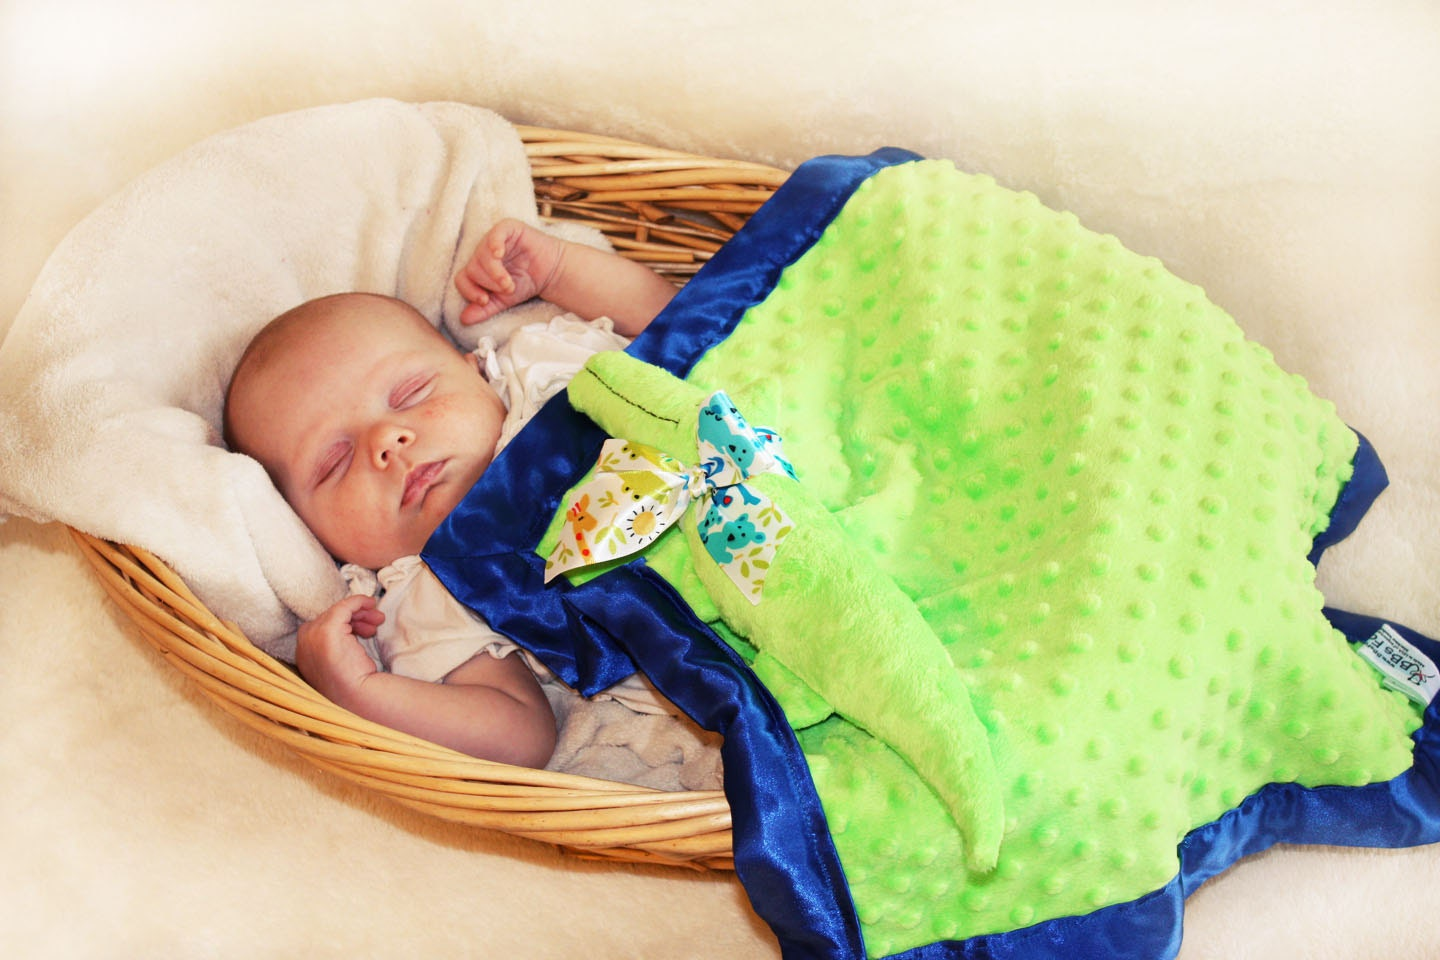 Baby Security Blankets Animals- Make every occasion special! Find personalized gifts for holidays, weddings & more. Personalized gifts make great gift ideas for any age.